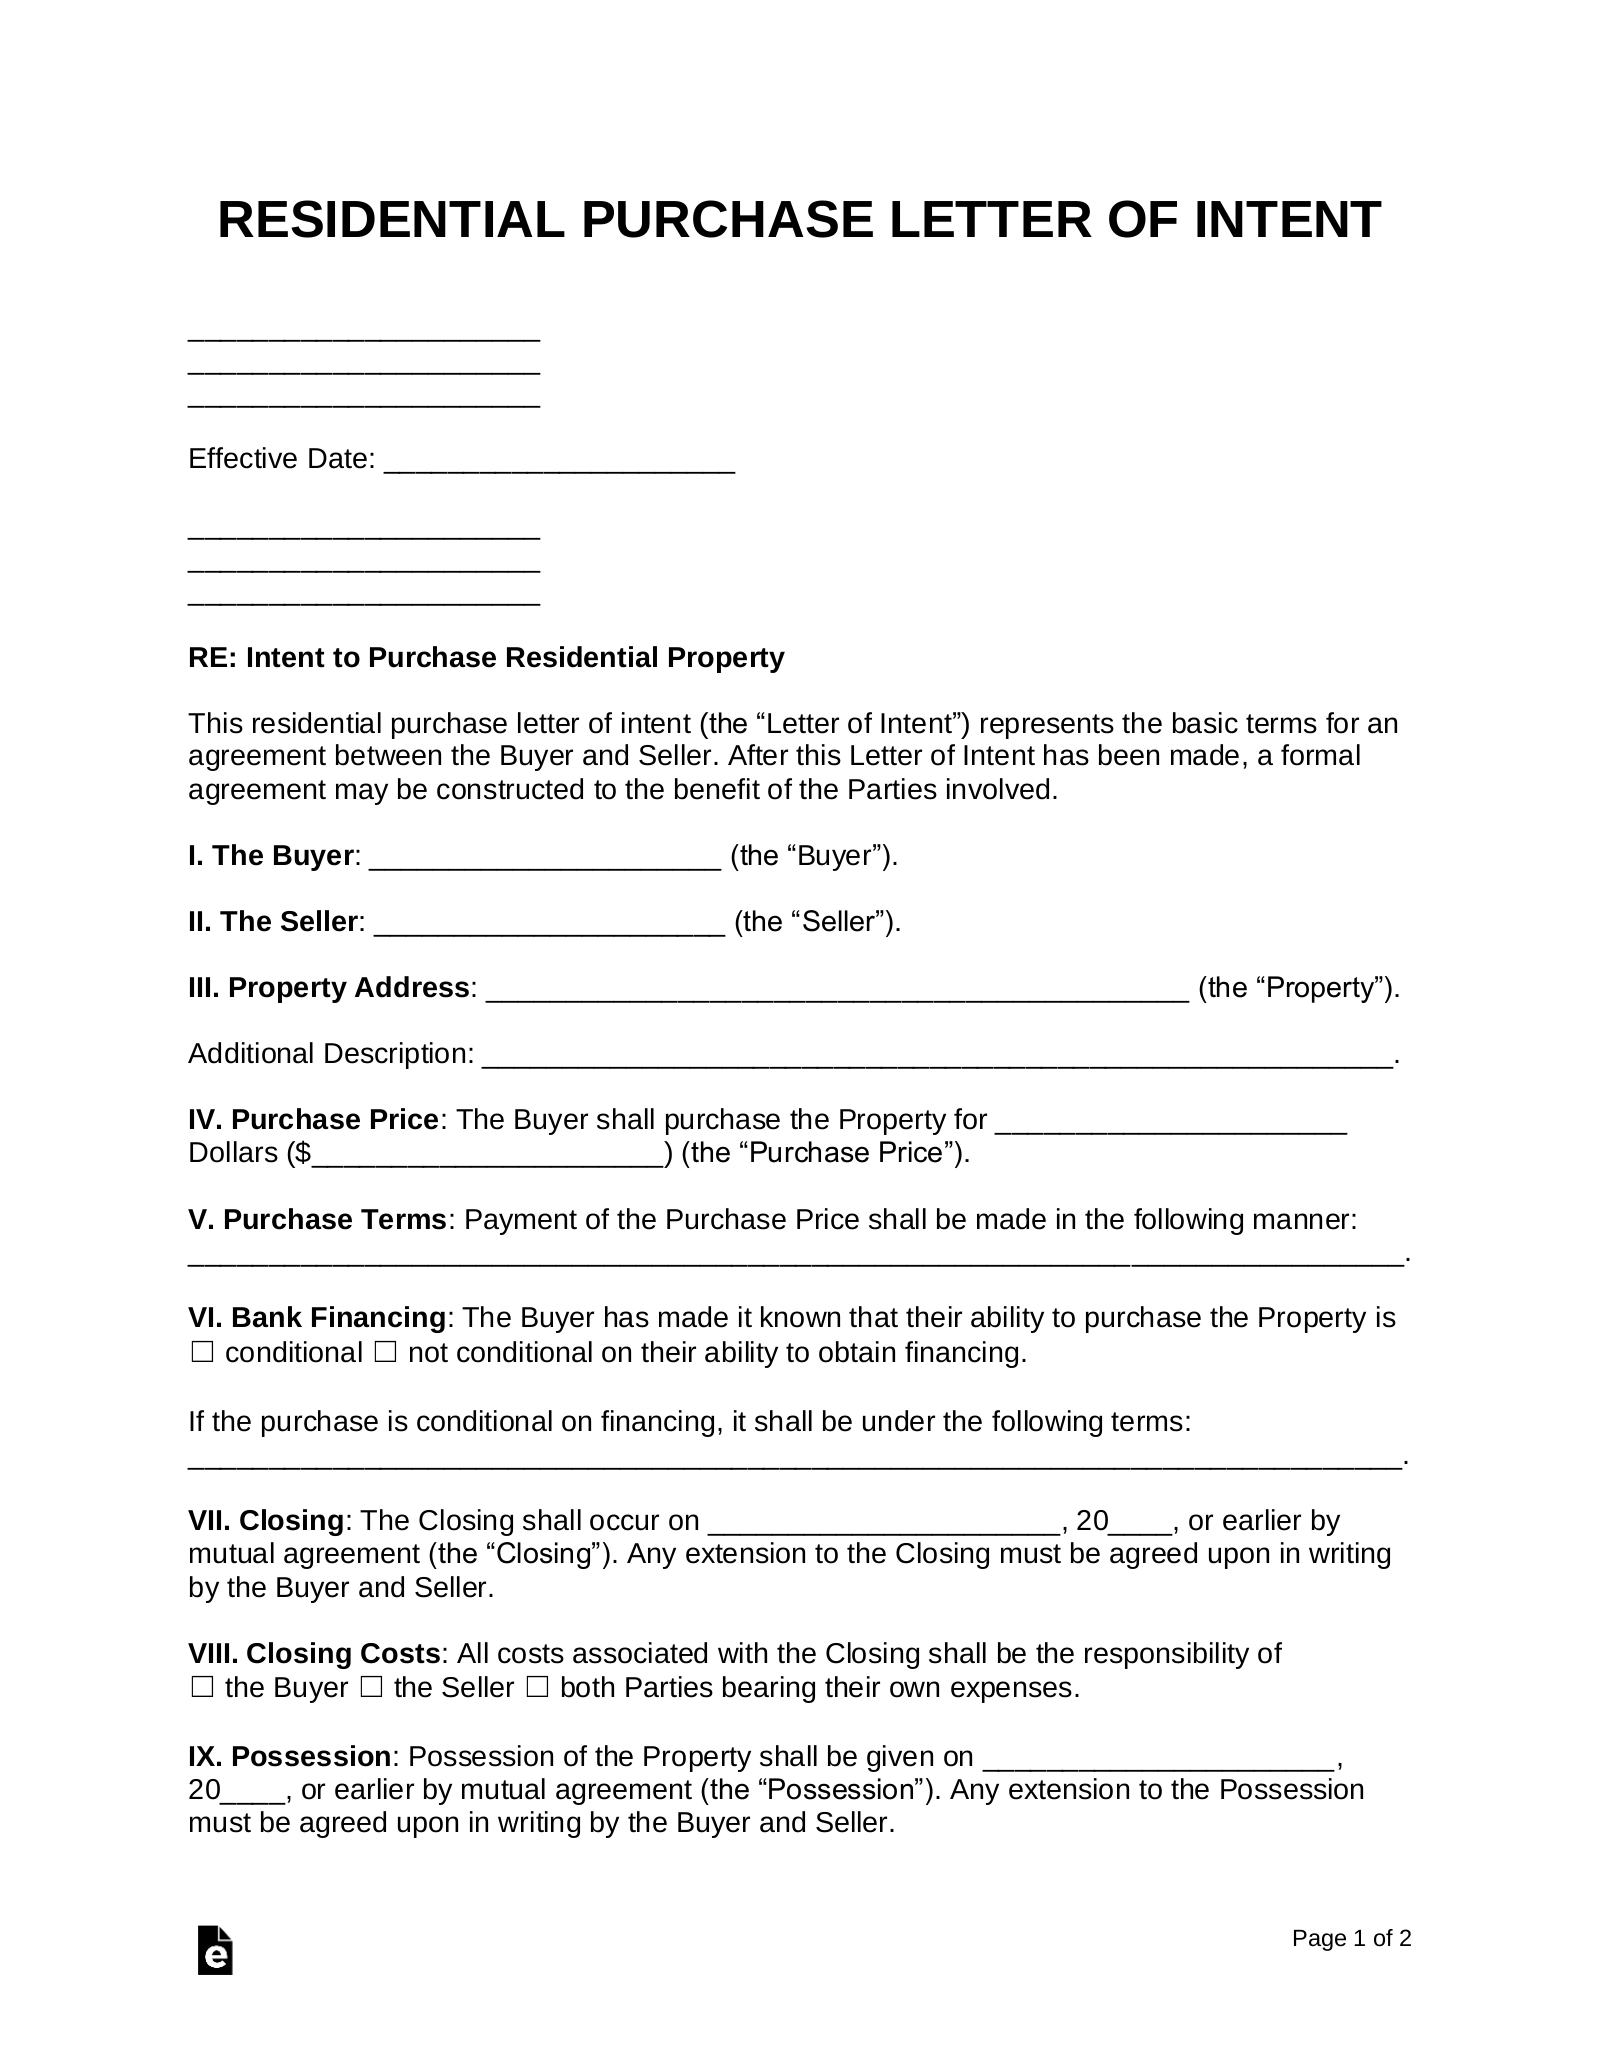 Format Letter Of Intent from eforms.com